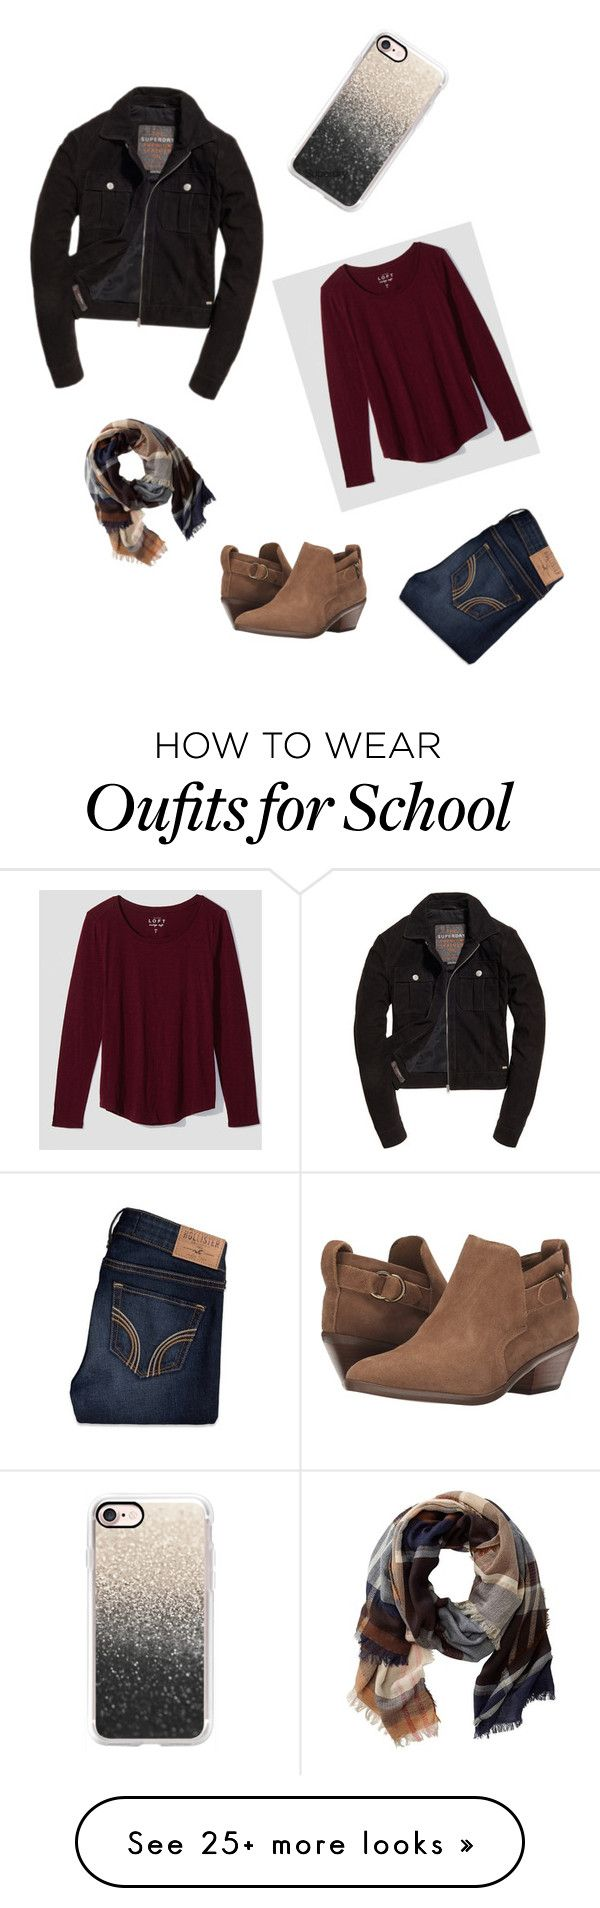 """School #52"" by annao133 on Polyvore featuring LOFT, Casetify, TravelSmith, Steven, Hollister Co. and Superdry"